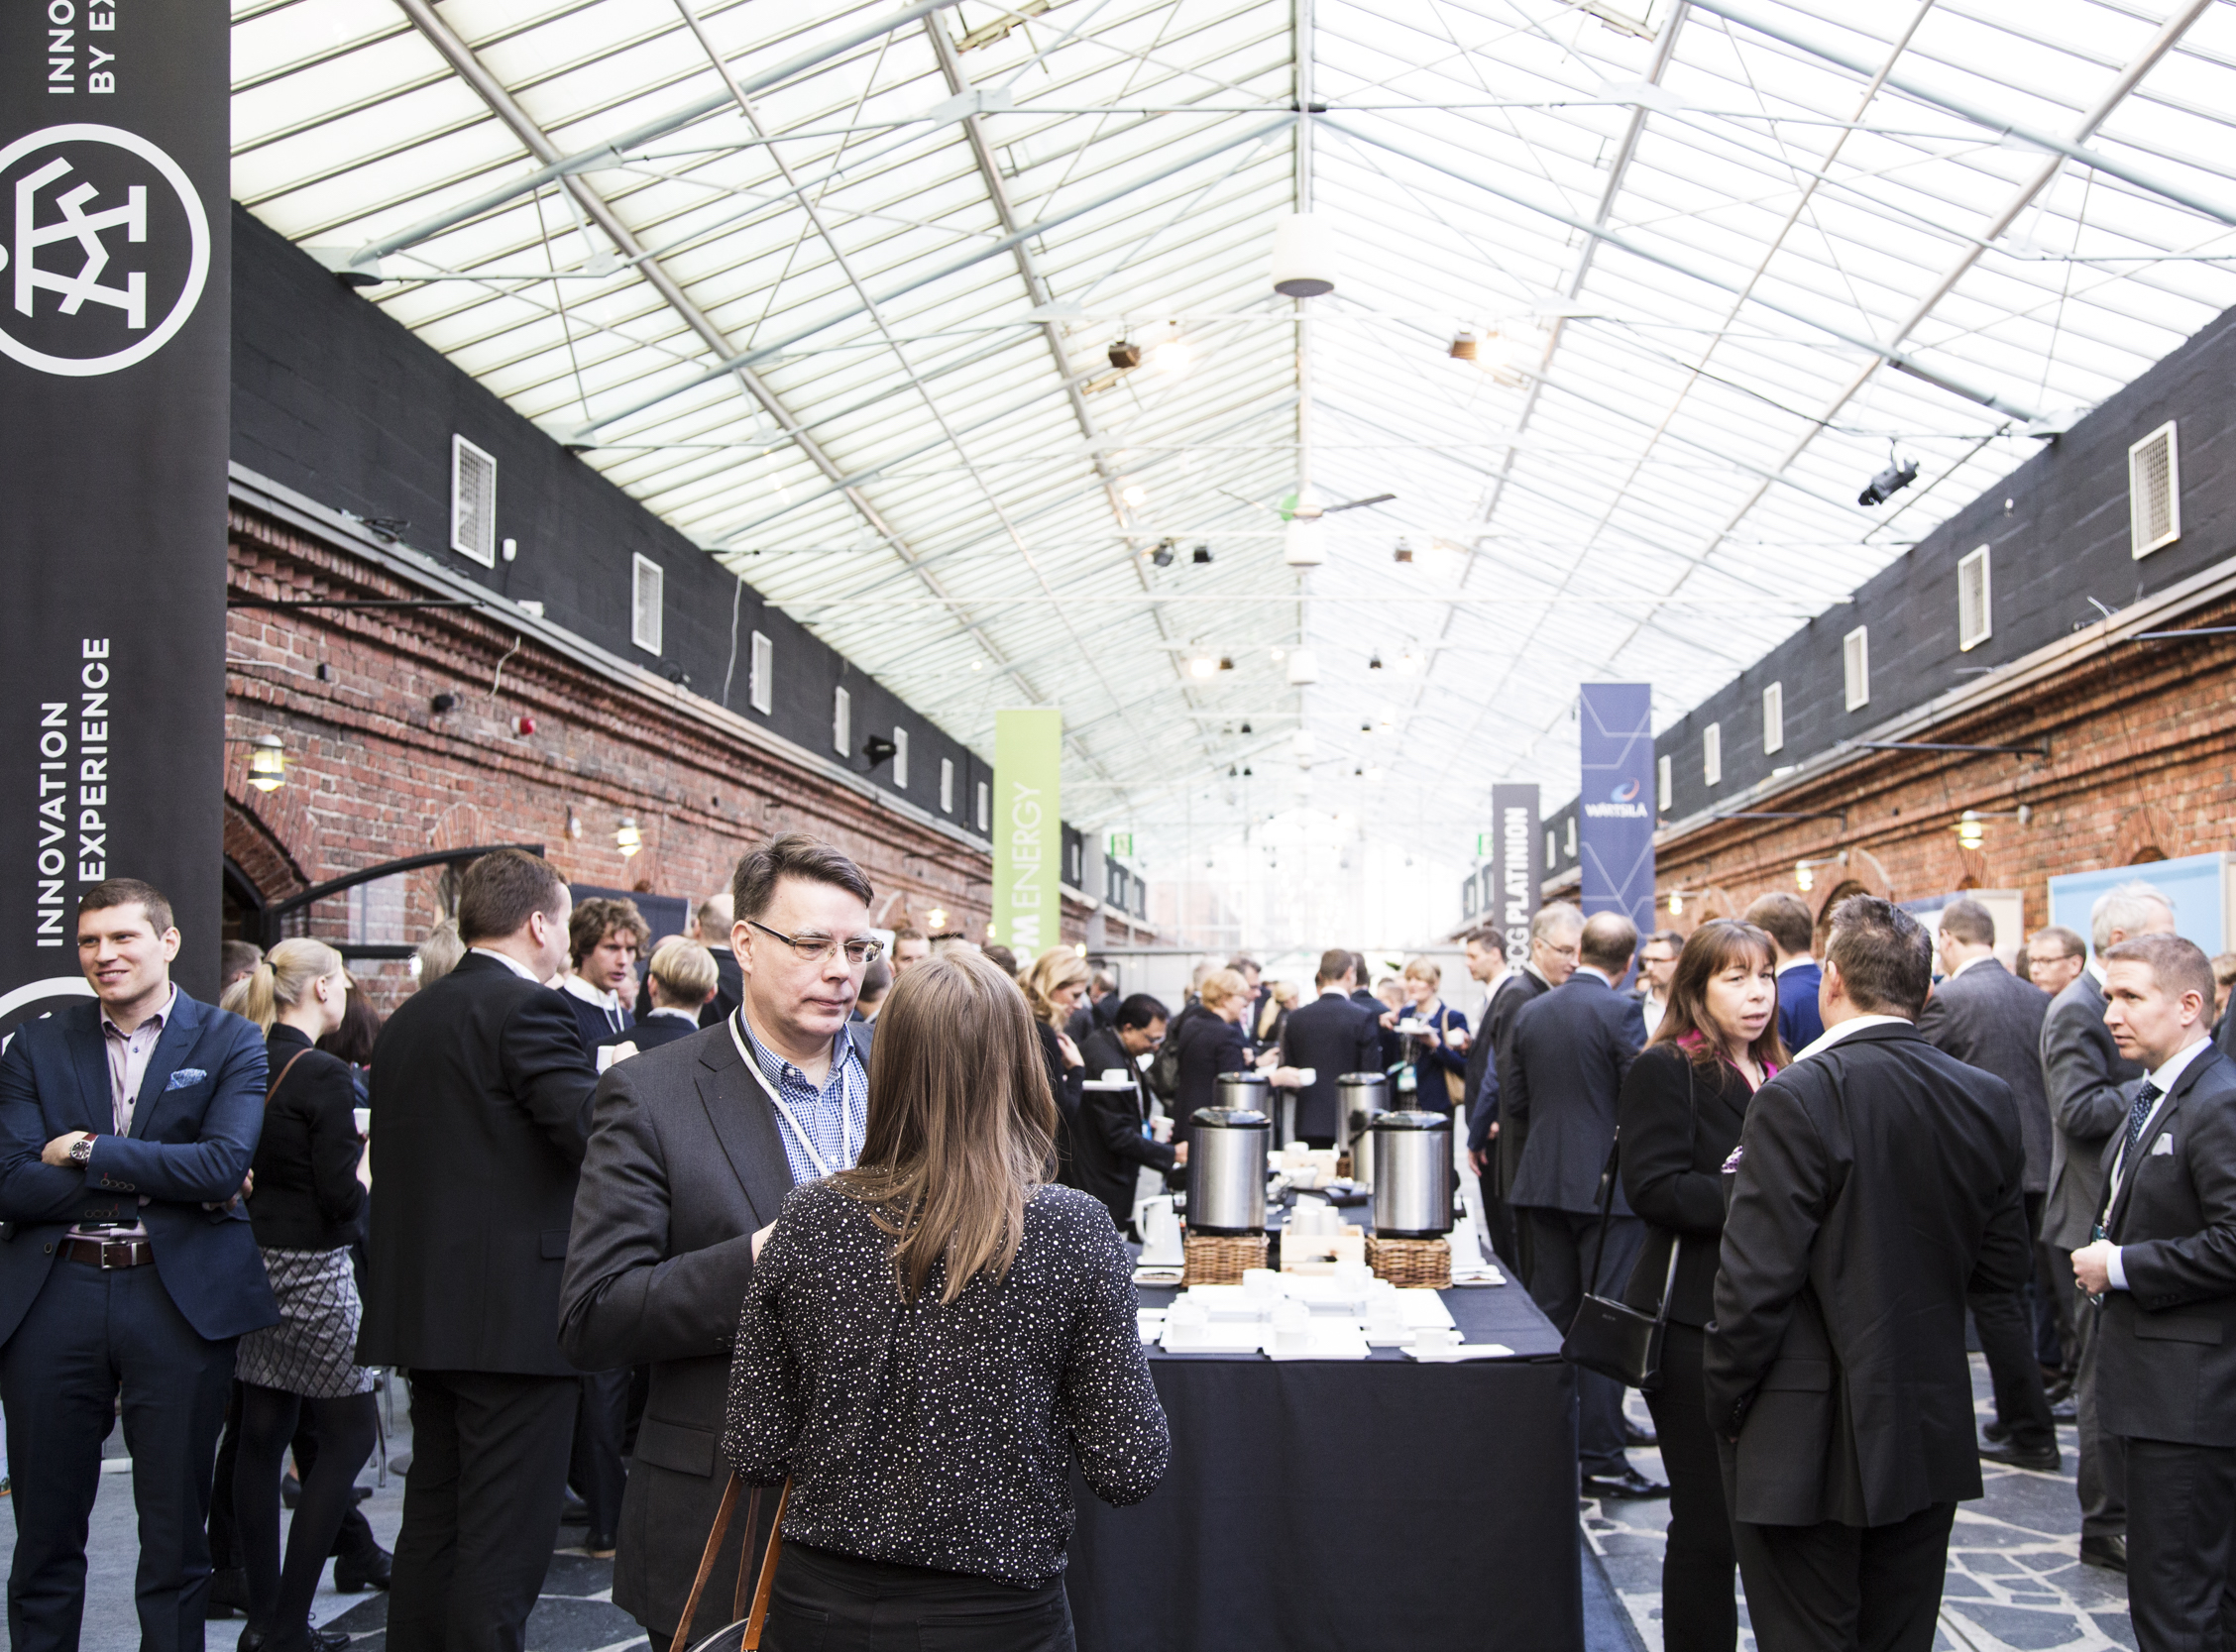 The future of energy debated at the Nordic Energy Forum5